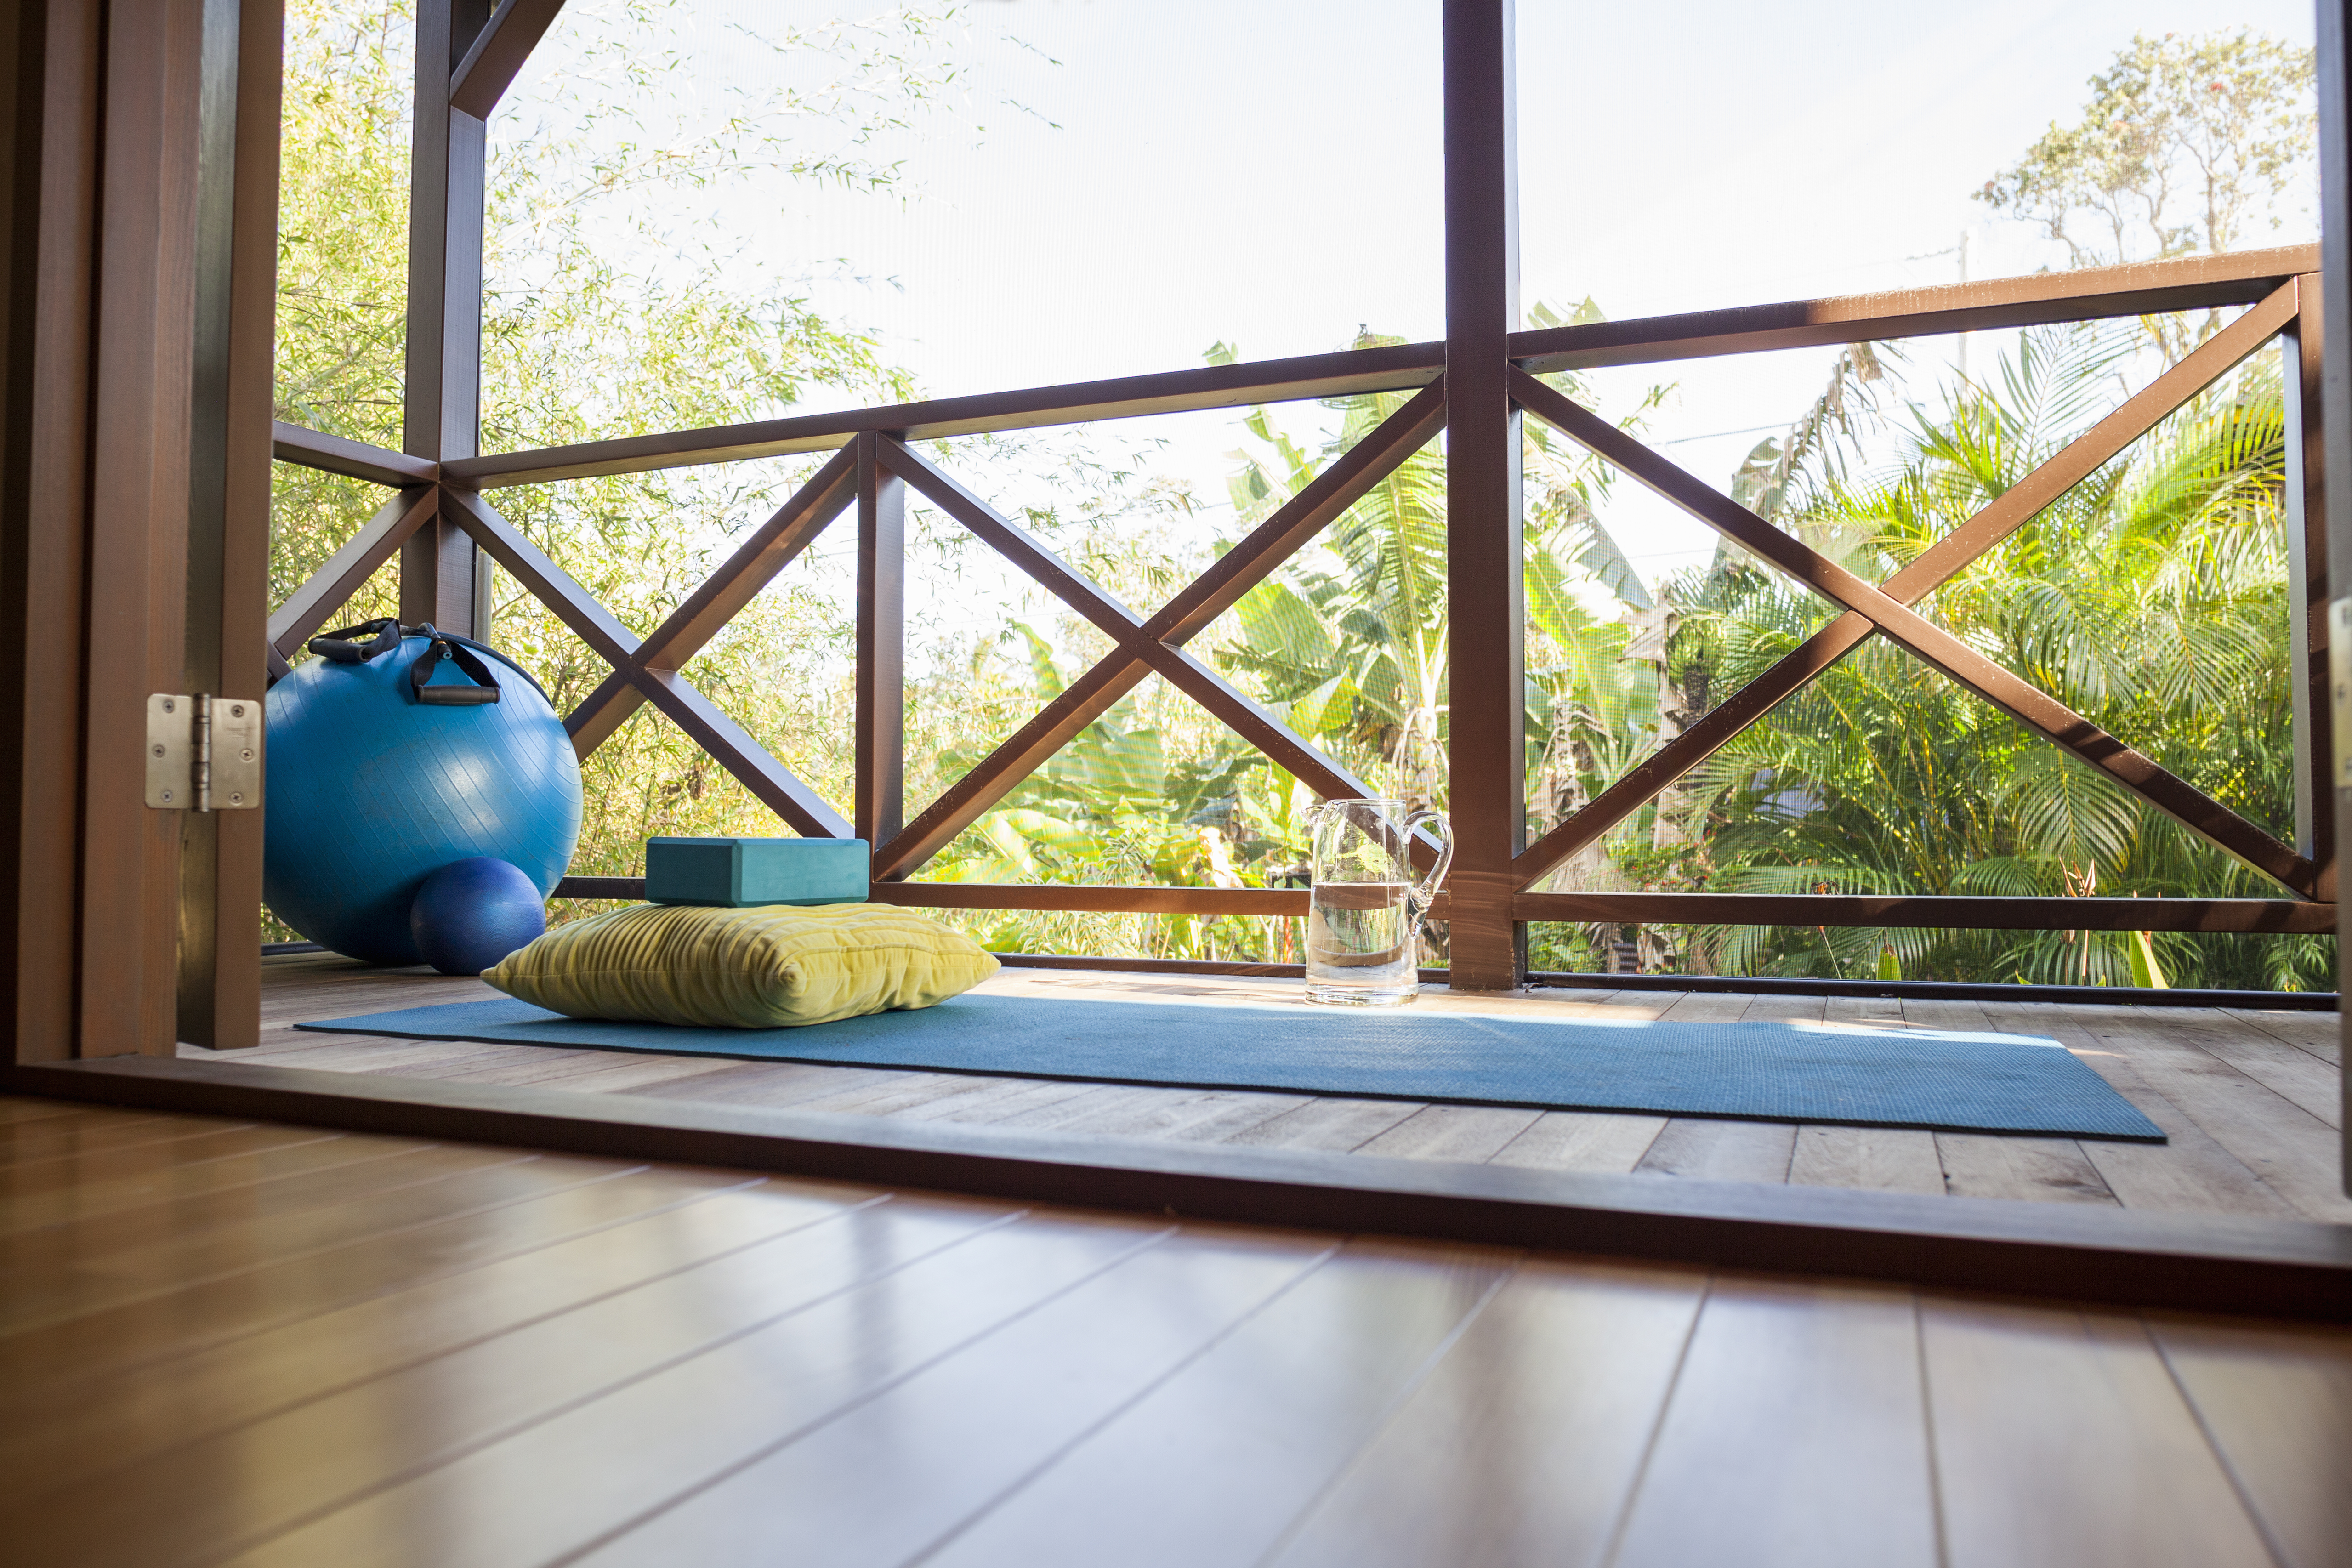 How to Incorporate Wellness into Your Home's Design